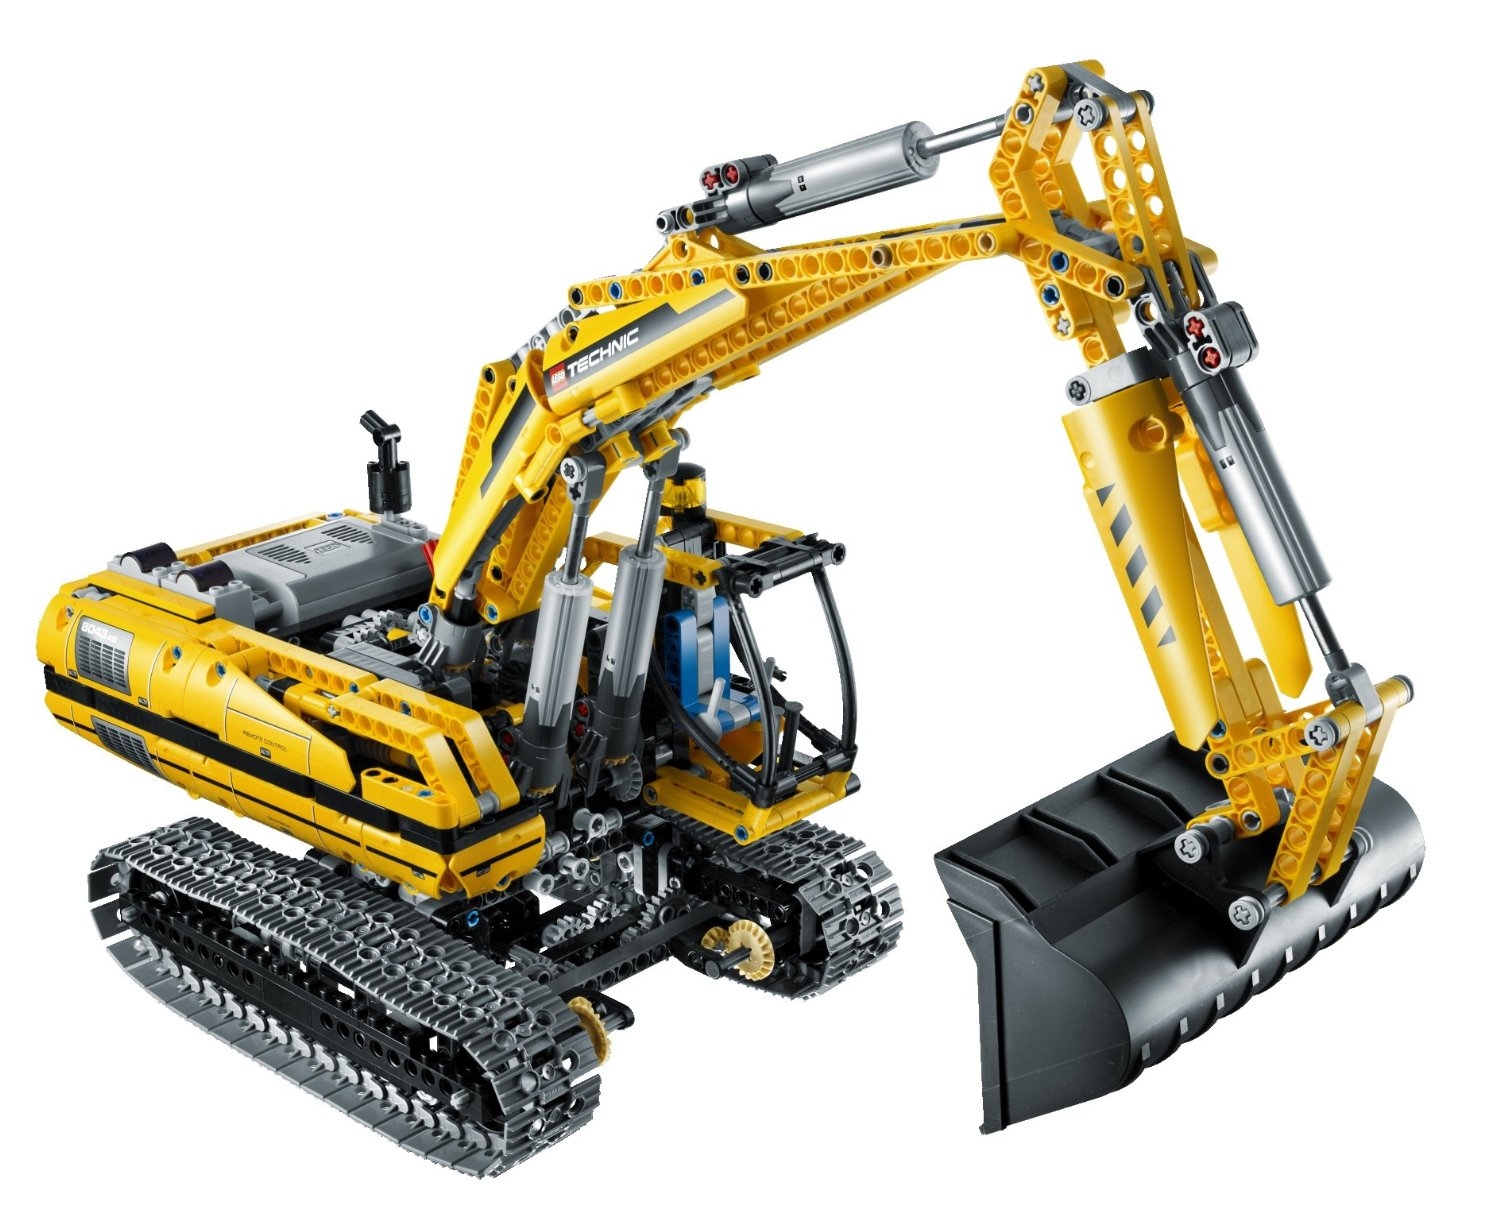 Lego Technic Schiffsschraube: The Best Ten LEGO Technic Sets You Can Build